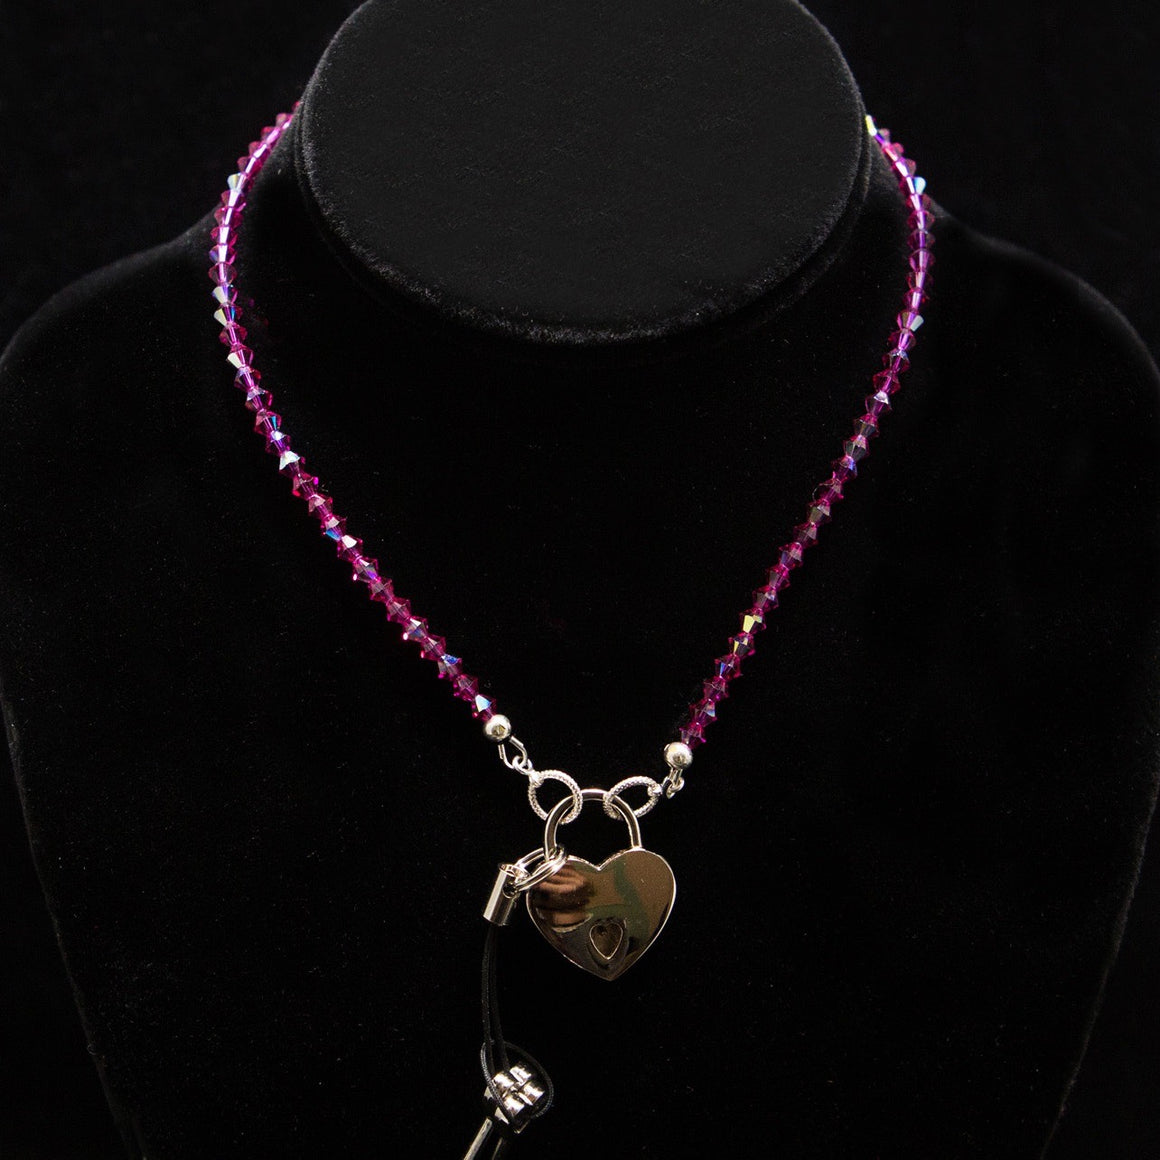 Day Necklace: Swarovski Crystal Magenta Beads with Heart Lock and Key